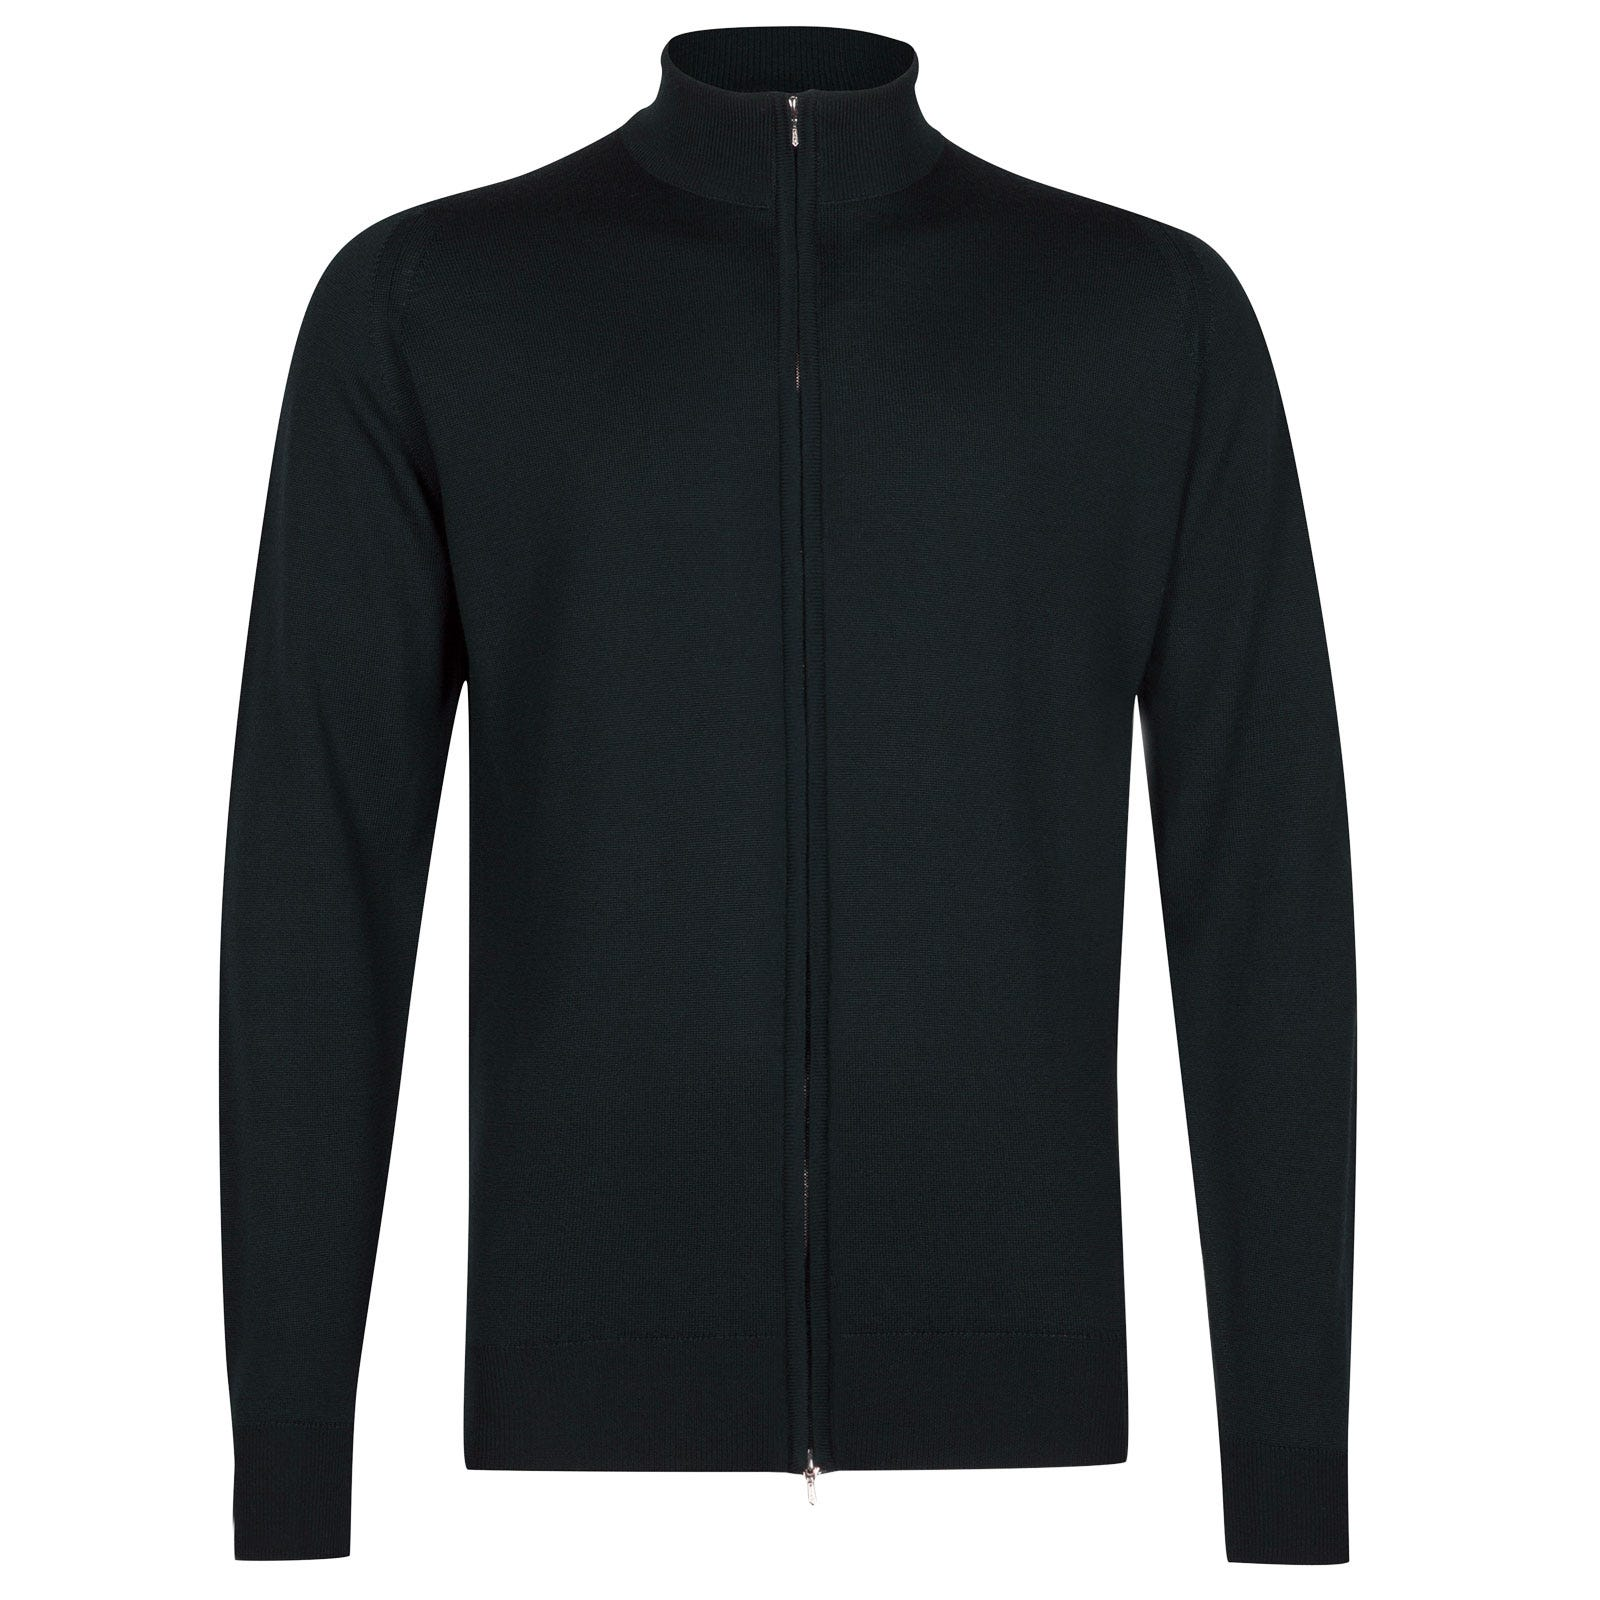 John Smedley claygate Merino Wool Jacket in Racing Green-L